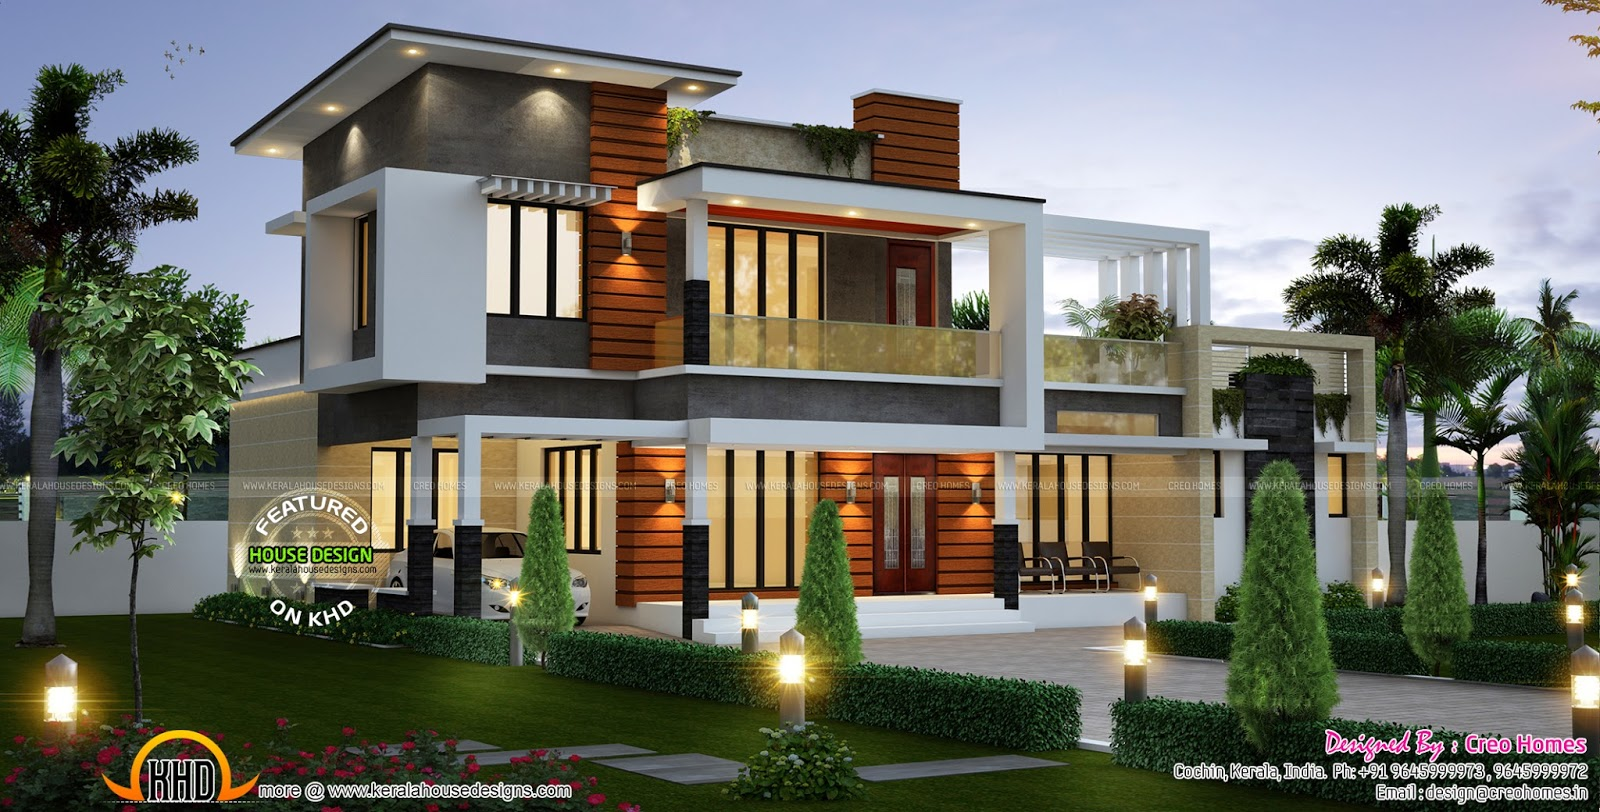 2075 sq ft modern contemporary house kerala home design for 3000 sq ft house plans kerala style